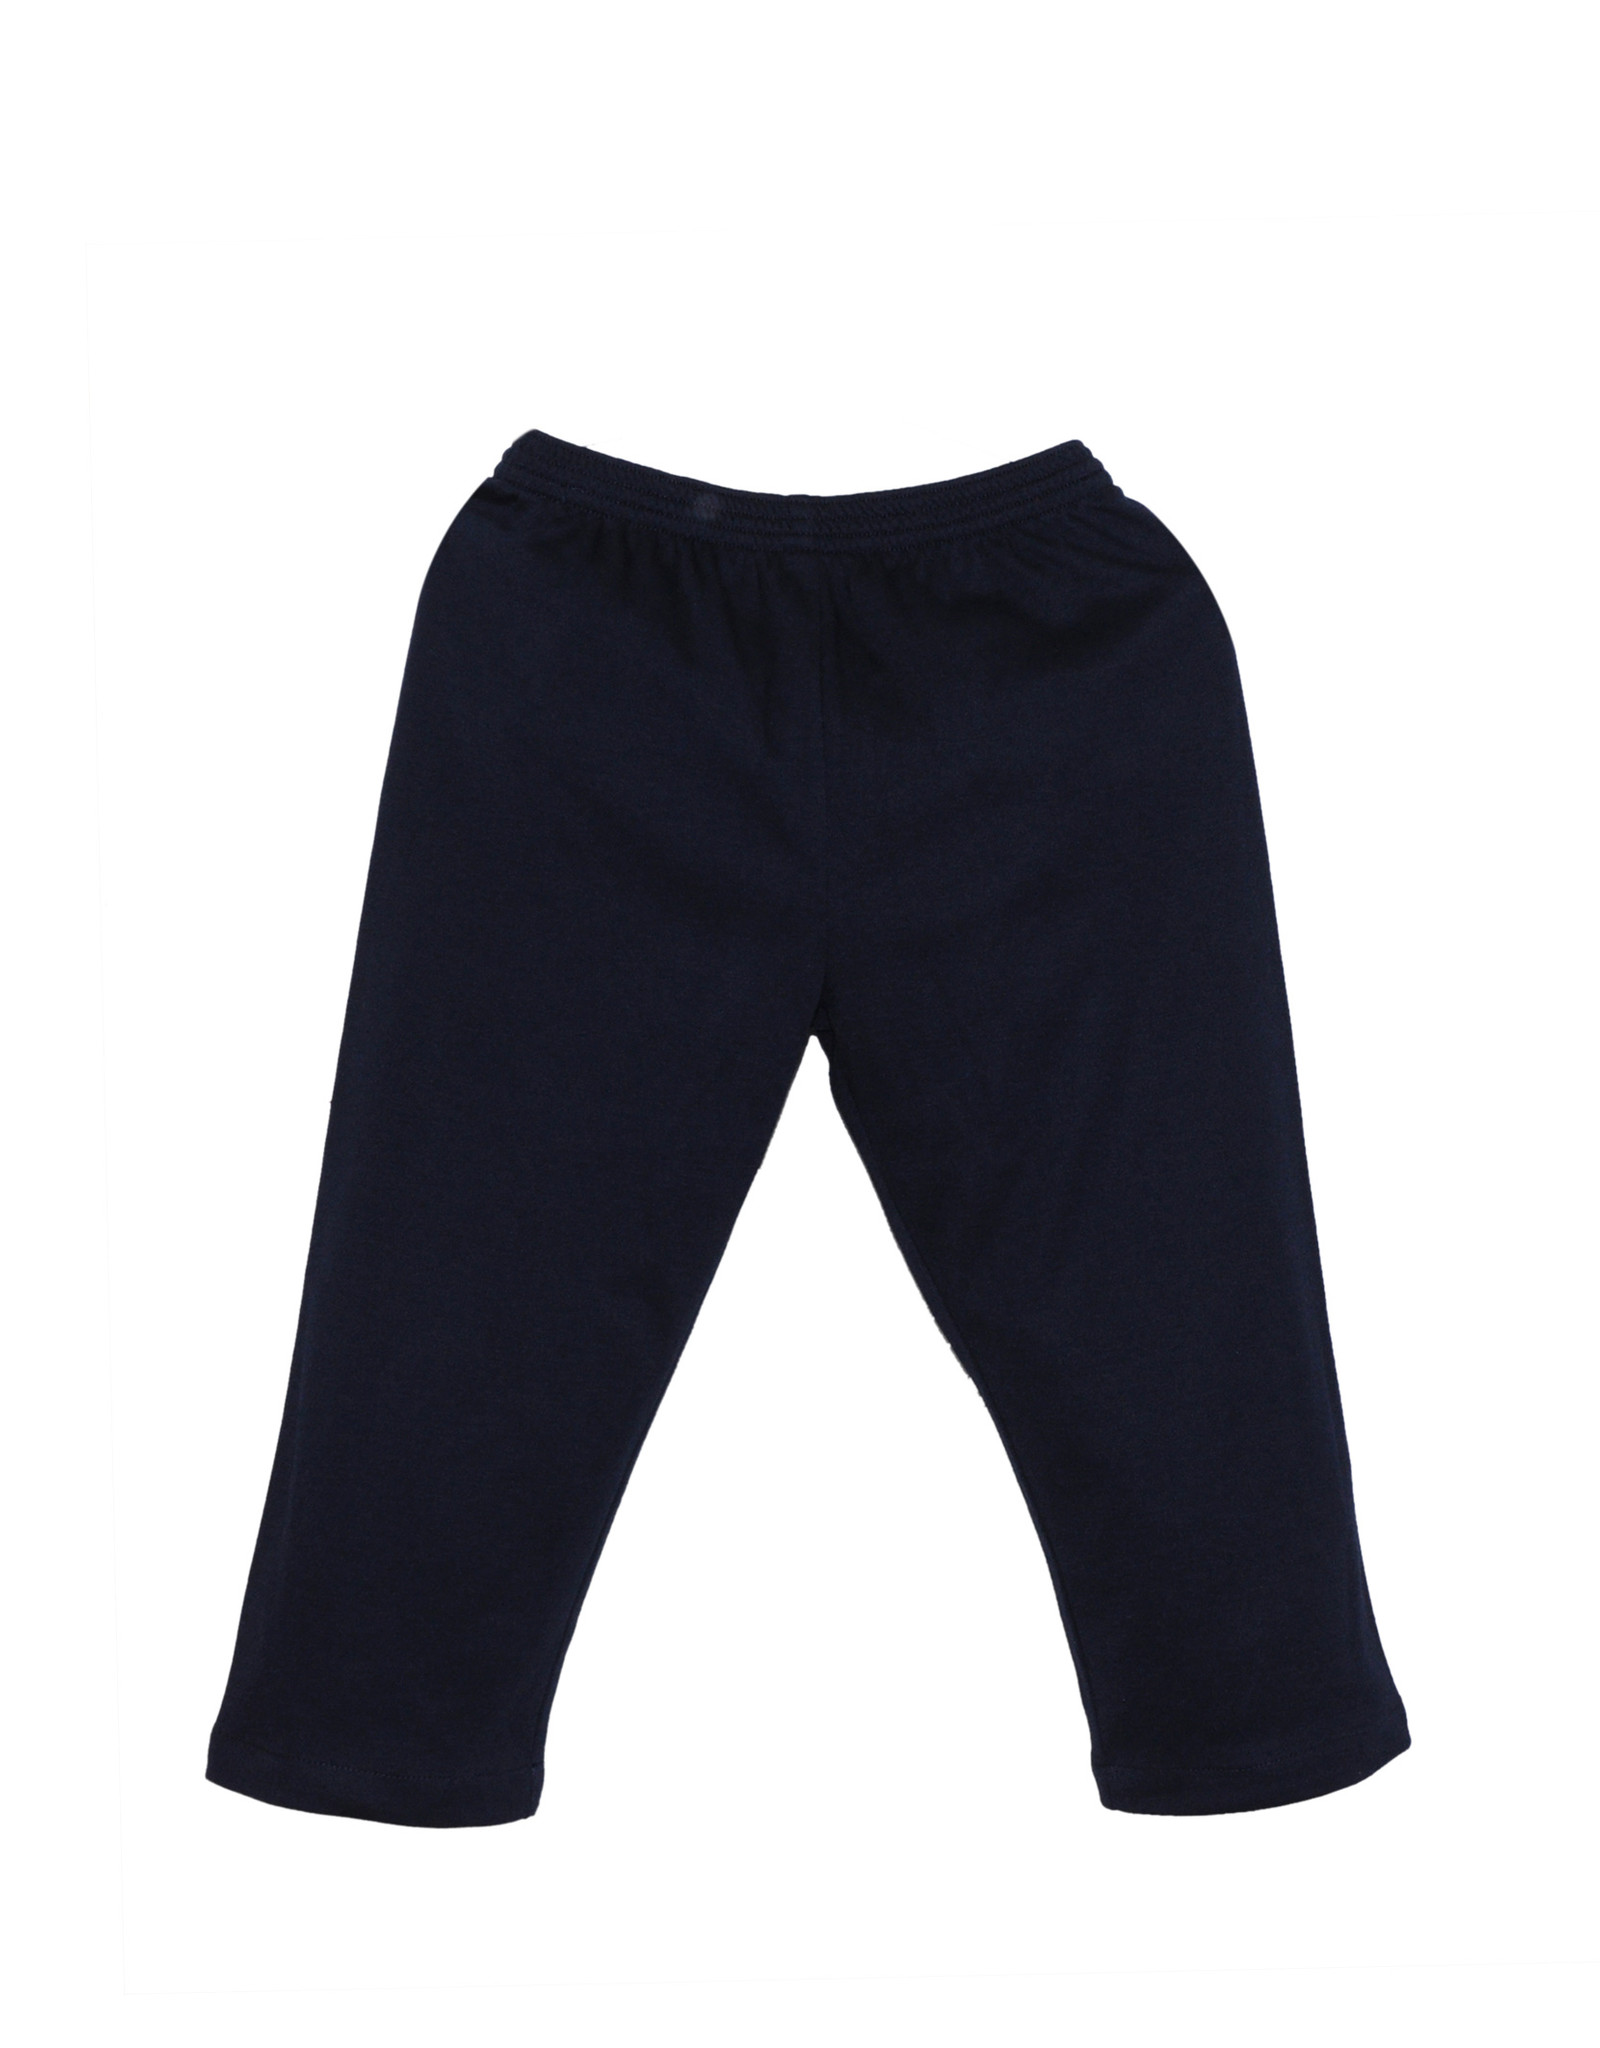 LullabySet Navy Knit Pant Set